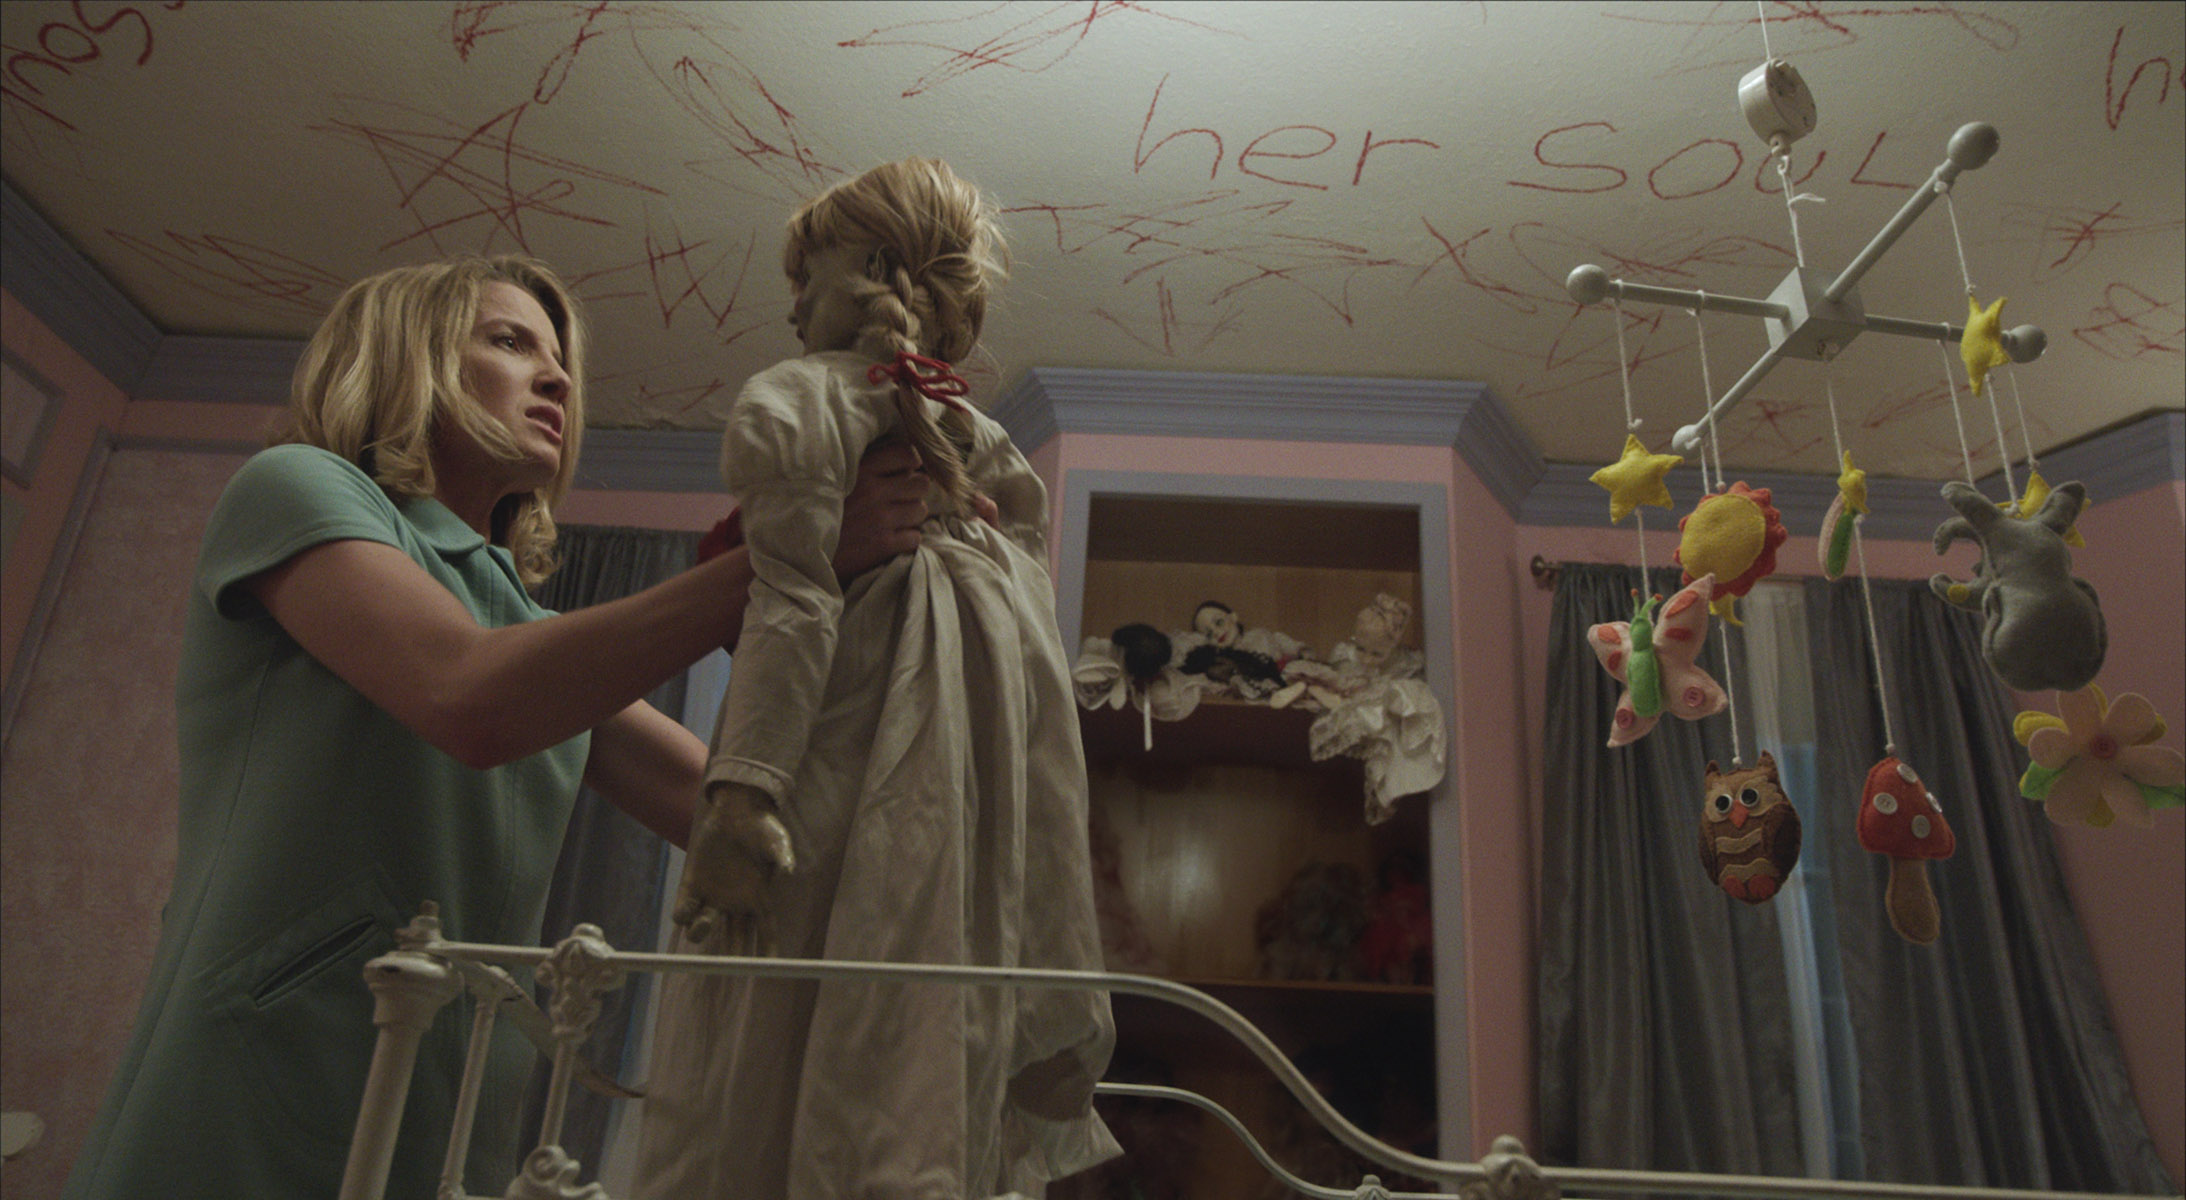 Mia (Annabelle Wallis) finds the Annabelle doll in her missing daughter's crib. (Photo: Warner Bros. Pictures)